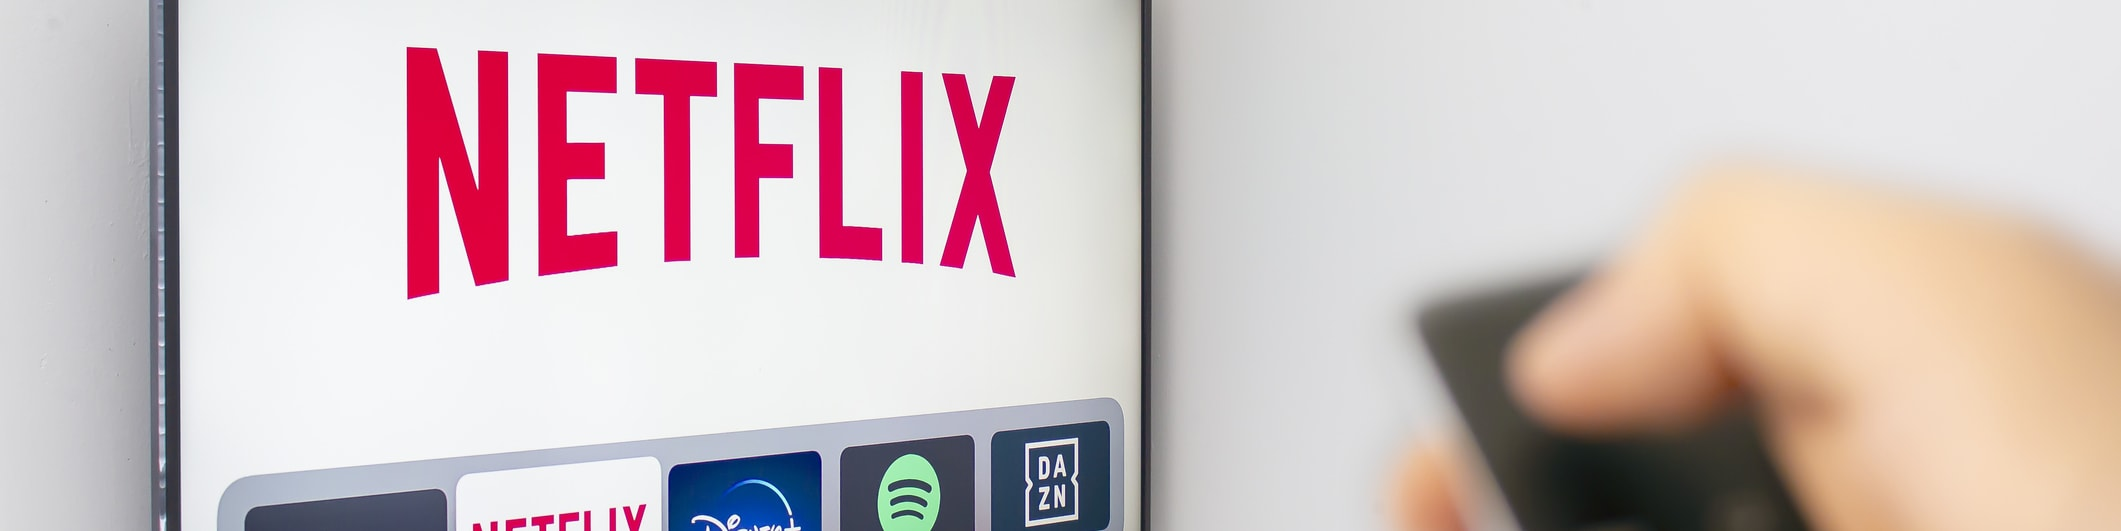 Netflix logo on TV